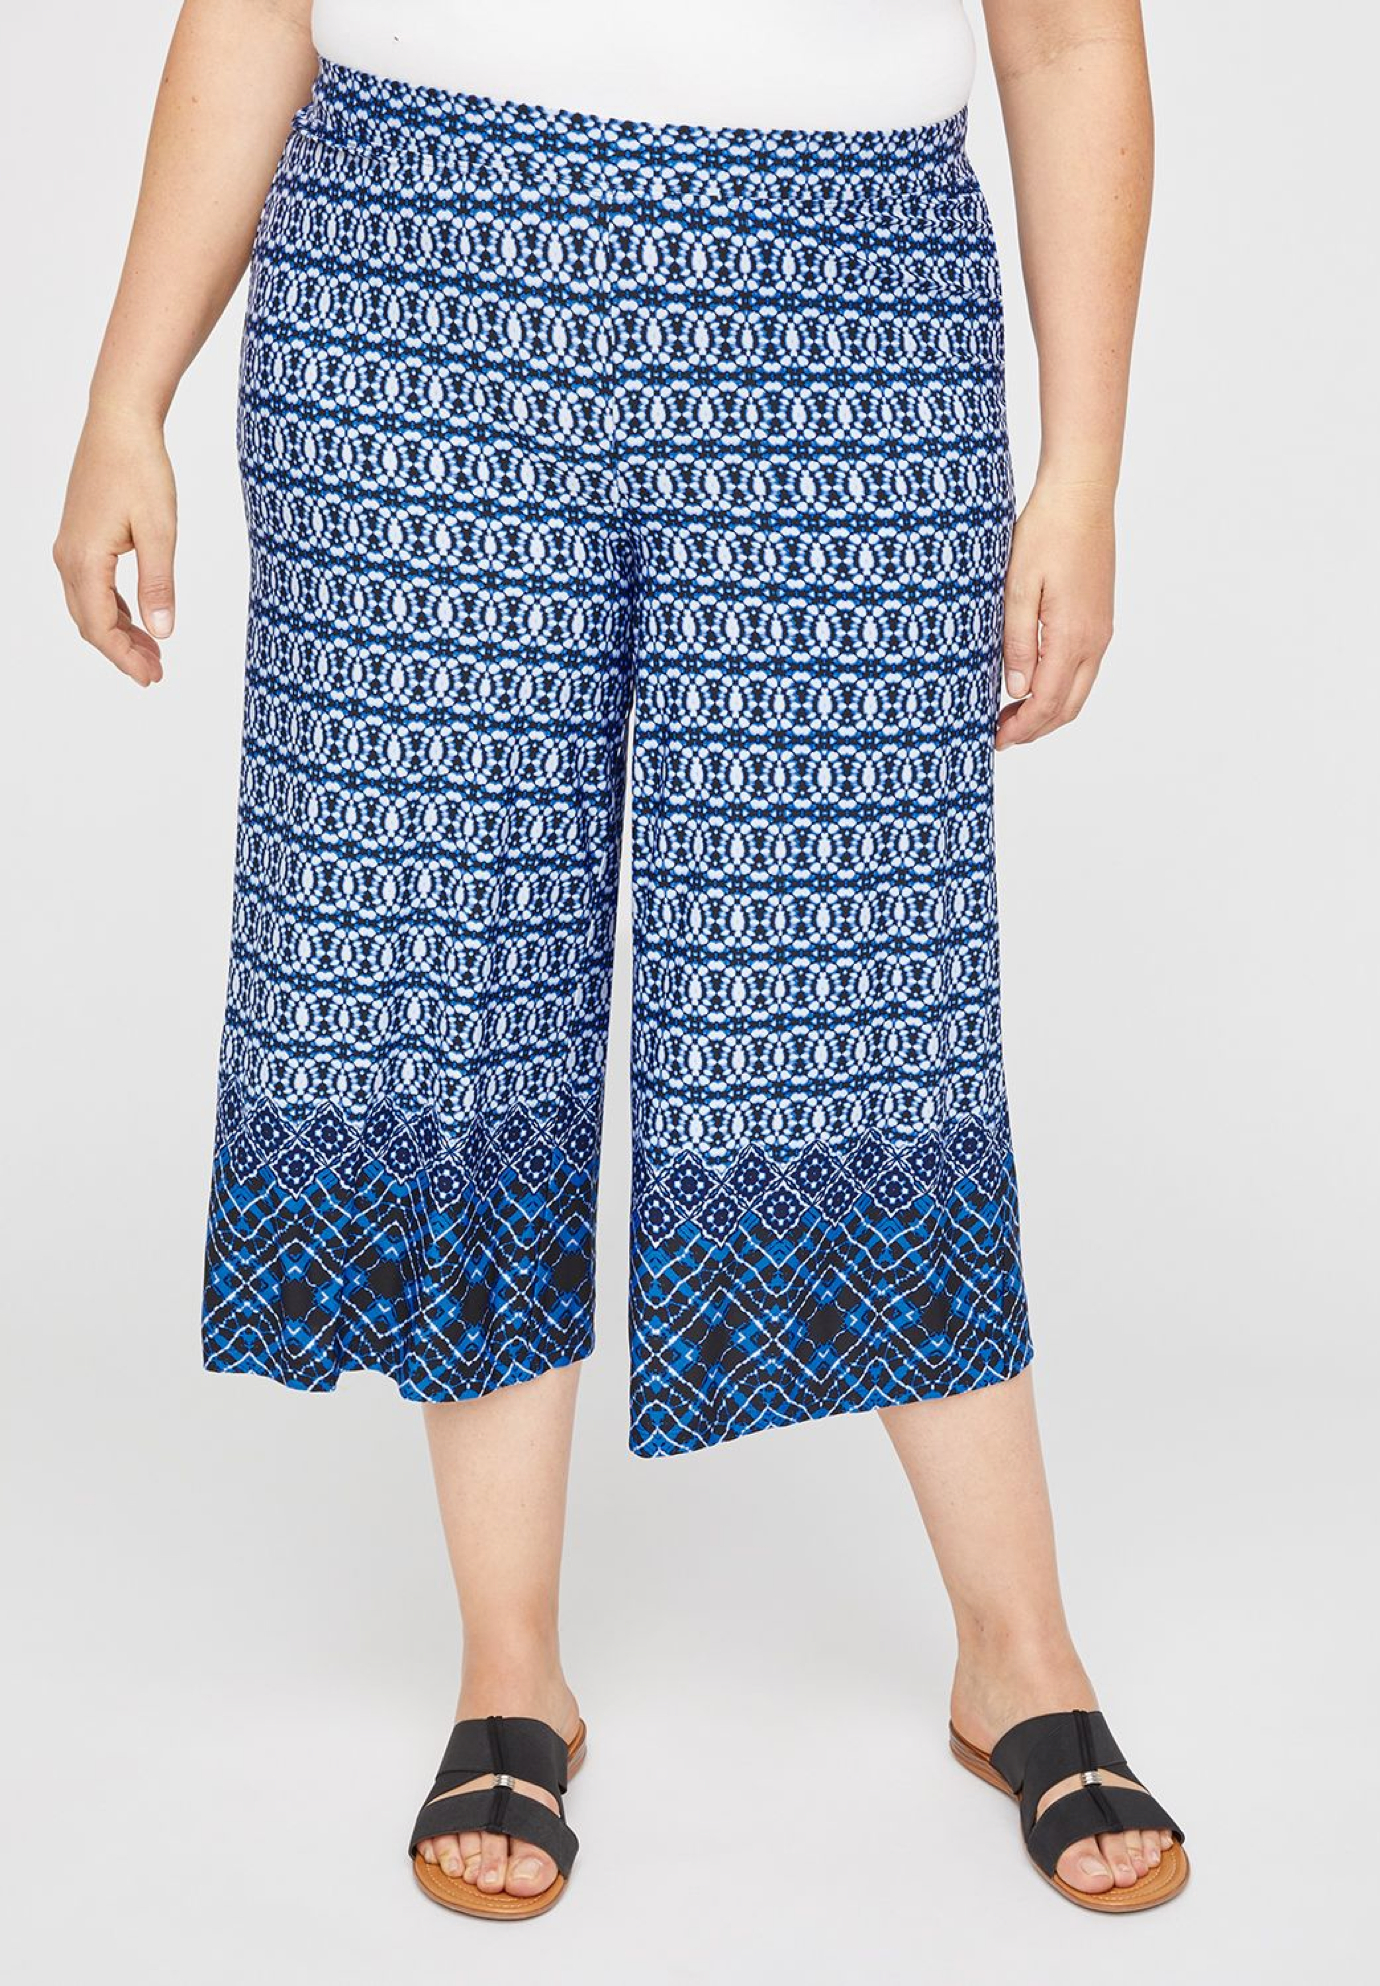 AnyWear Sonoma Wide Leg Capri,